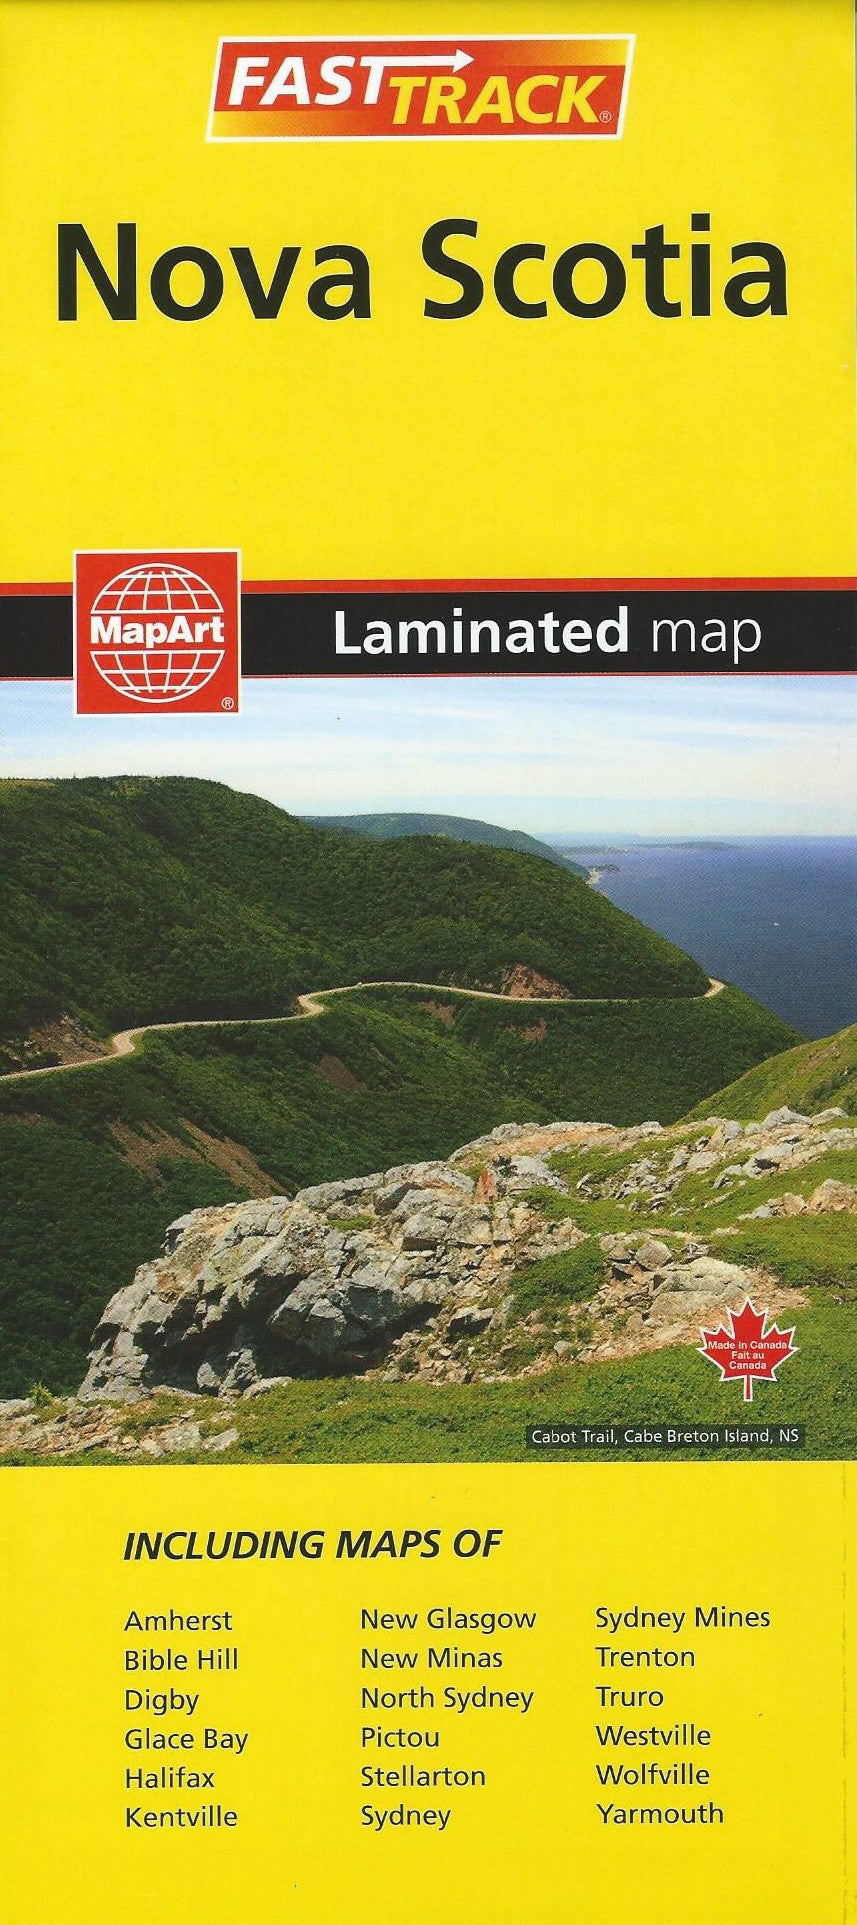 Nova Scotia Fast Track Laminated Map